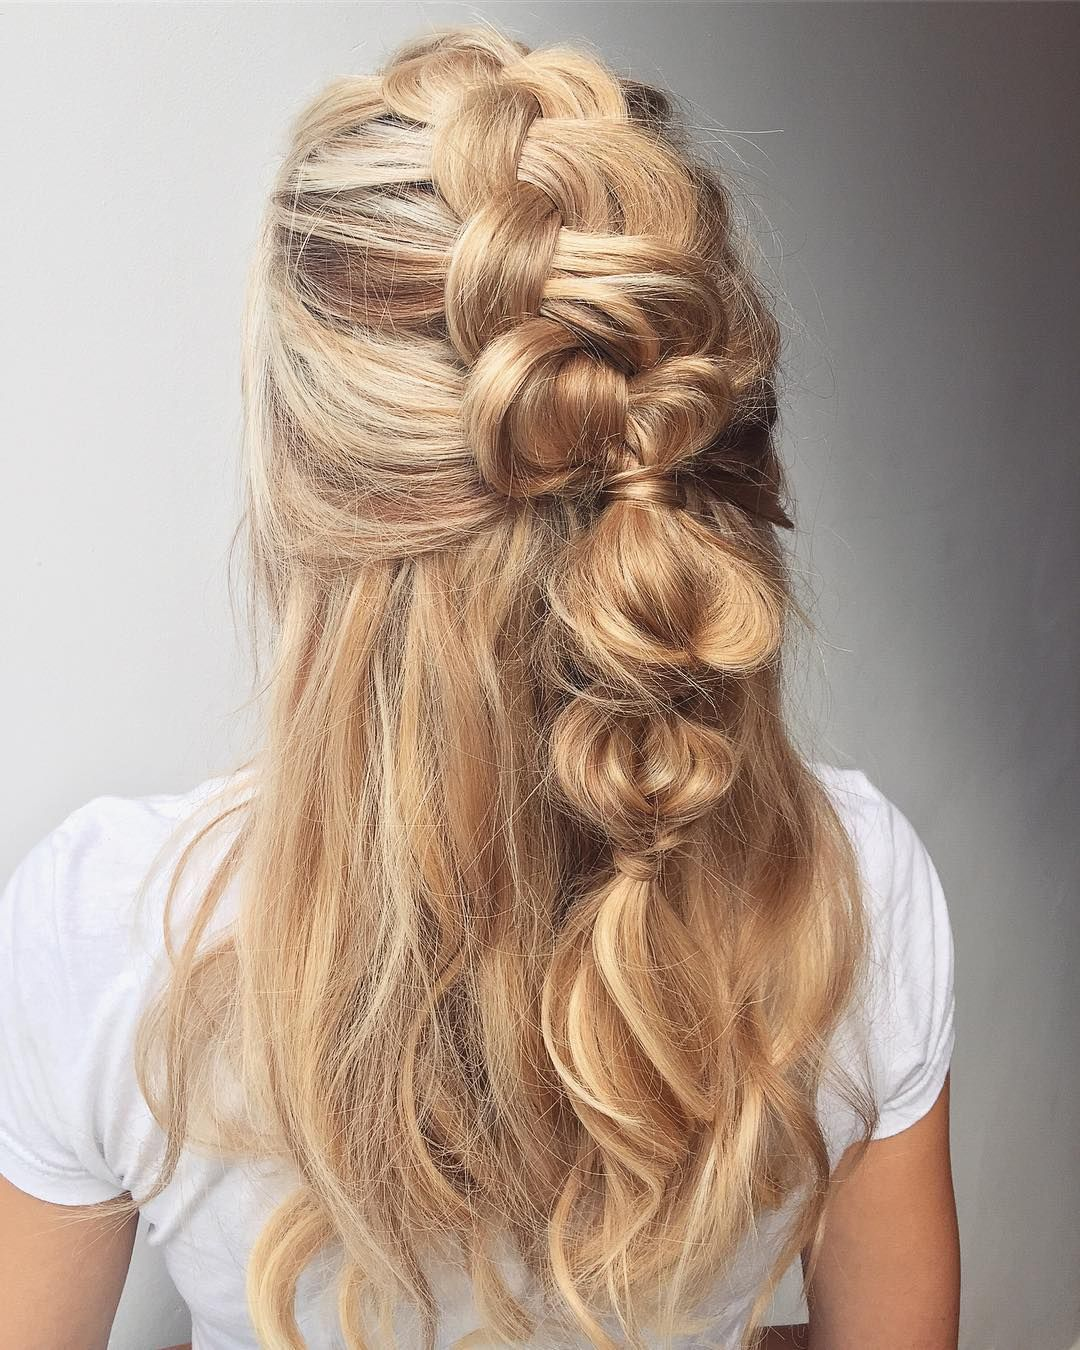 Bubble Braided Half Up Half Down Hairstyle Inspiration Braid Hairstyle Braided Ponytails Brai Braided Hairstyles Easy Hairstyles For Long Hair Hair Styles